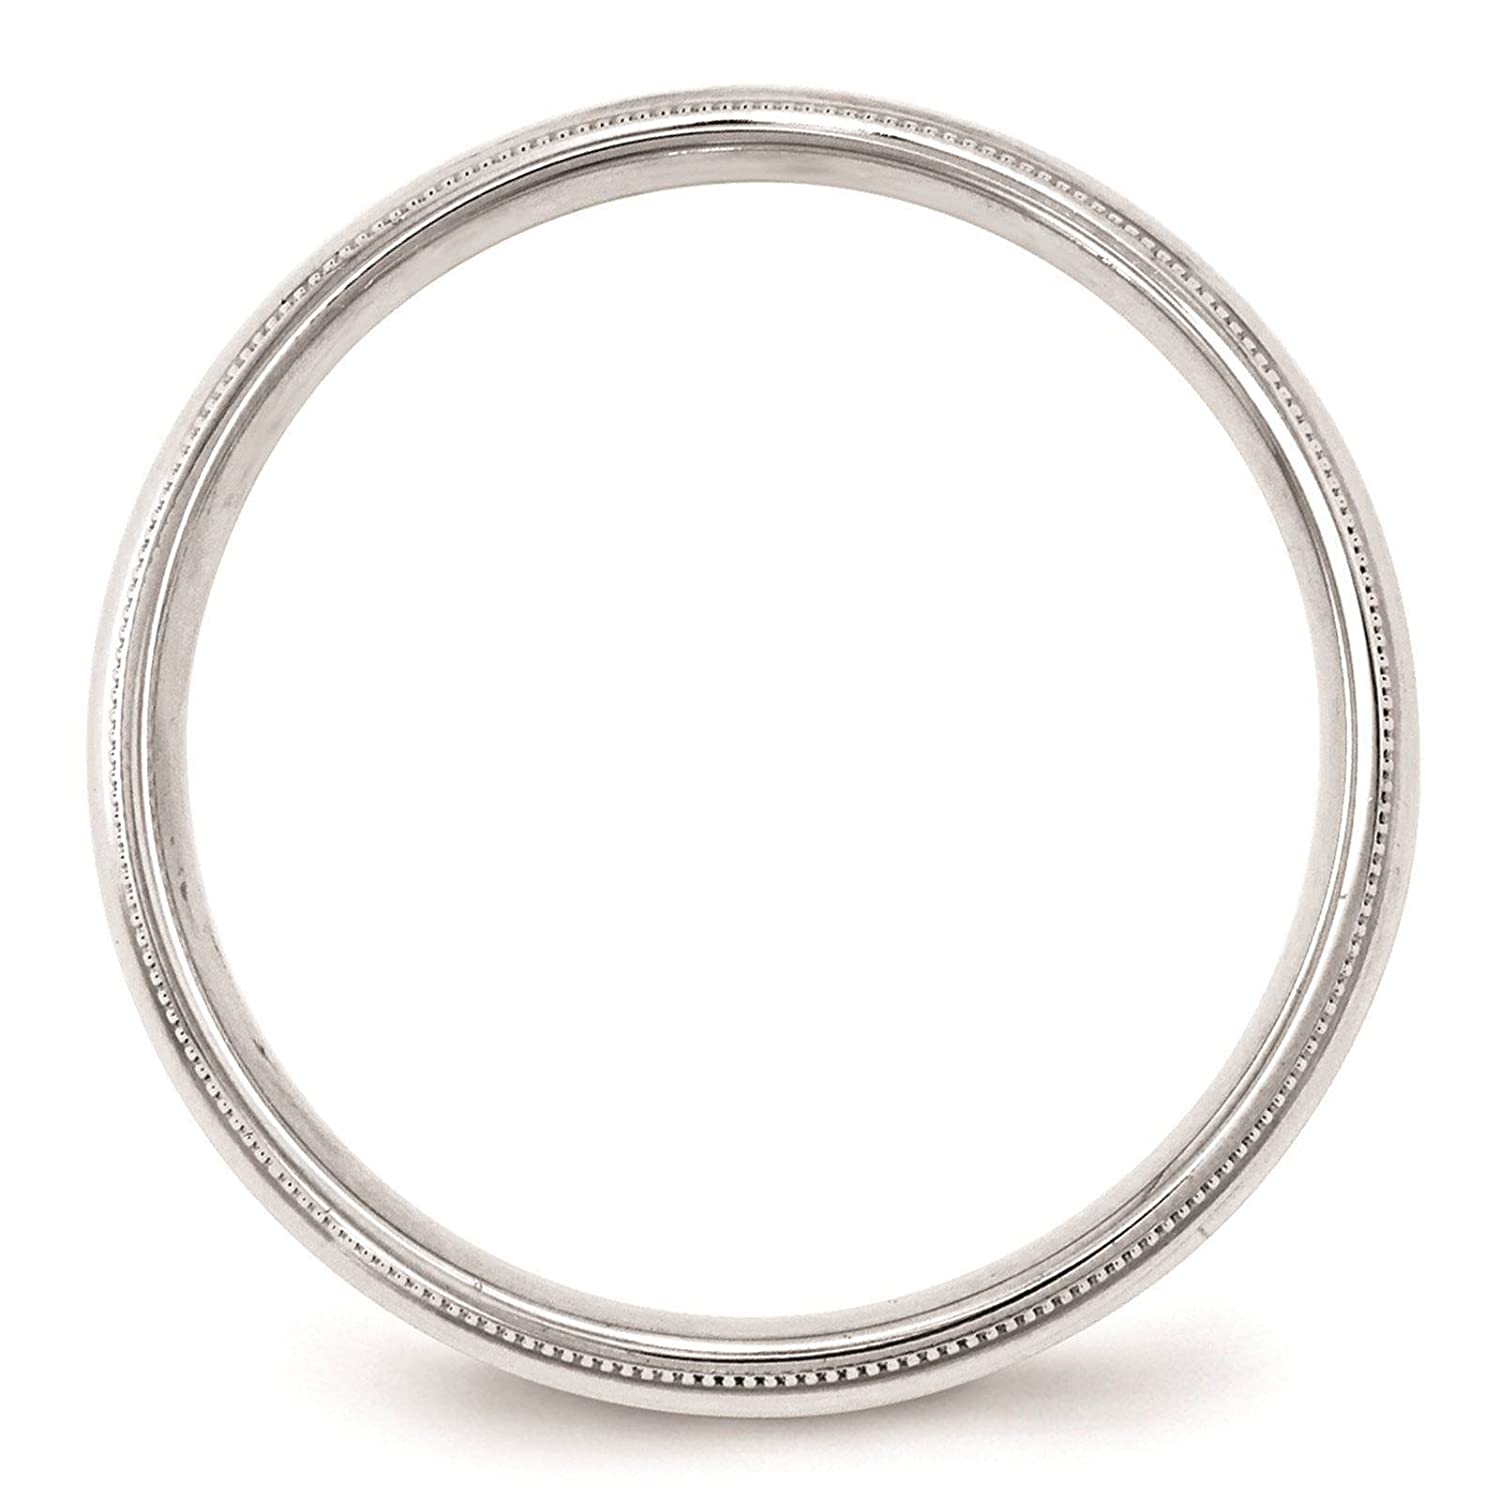 10k White Gold 4mm Milgrain Comfort Fit Wedding Ring Band Size 4-14 Full /& Half Sizes